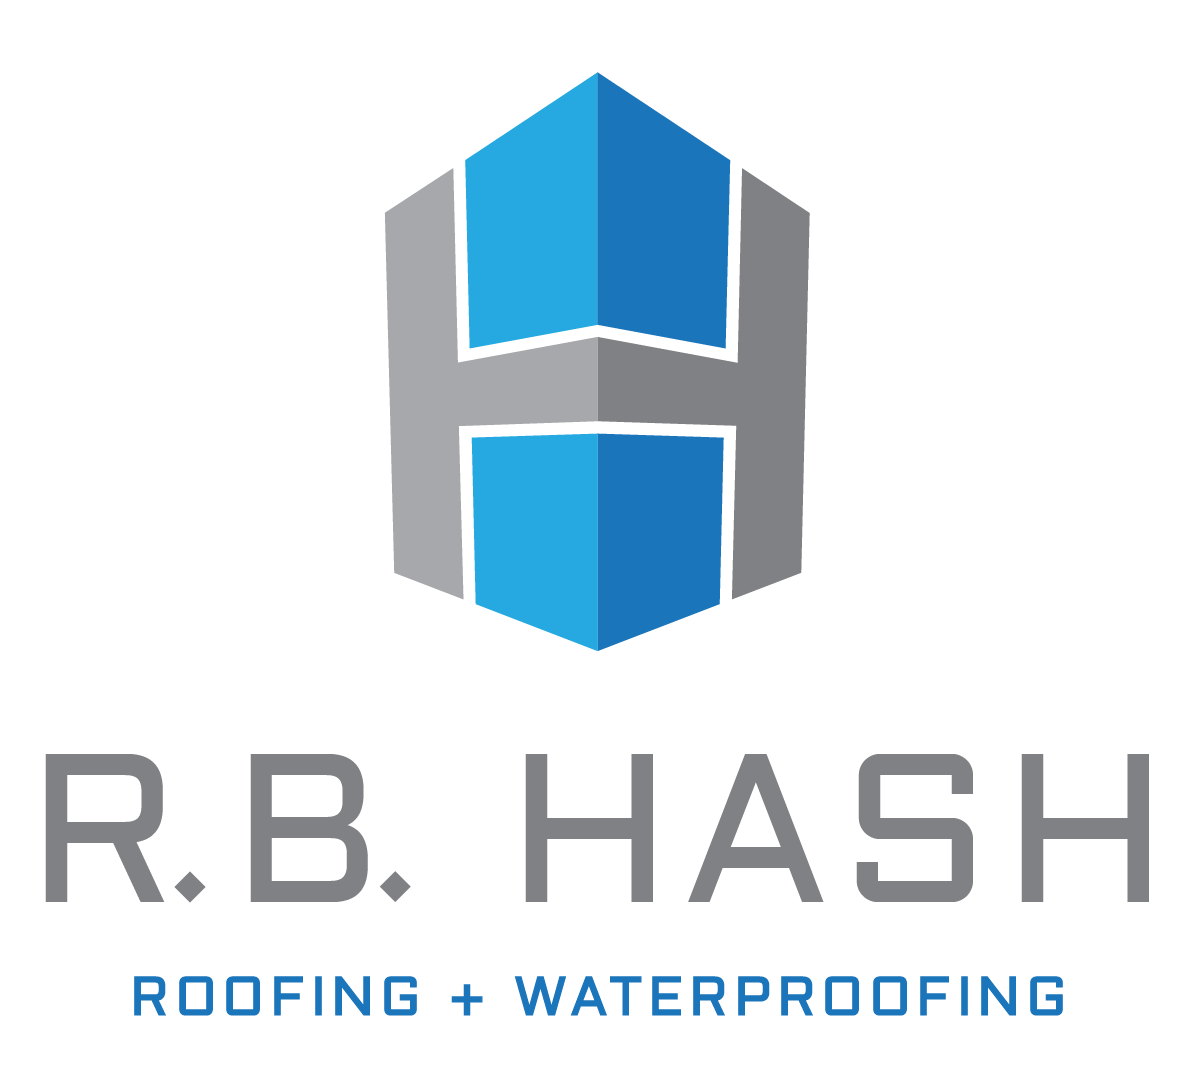 R. B. Hash Roofing and Waterproofing